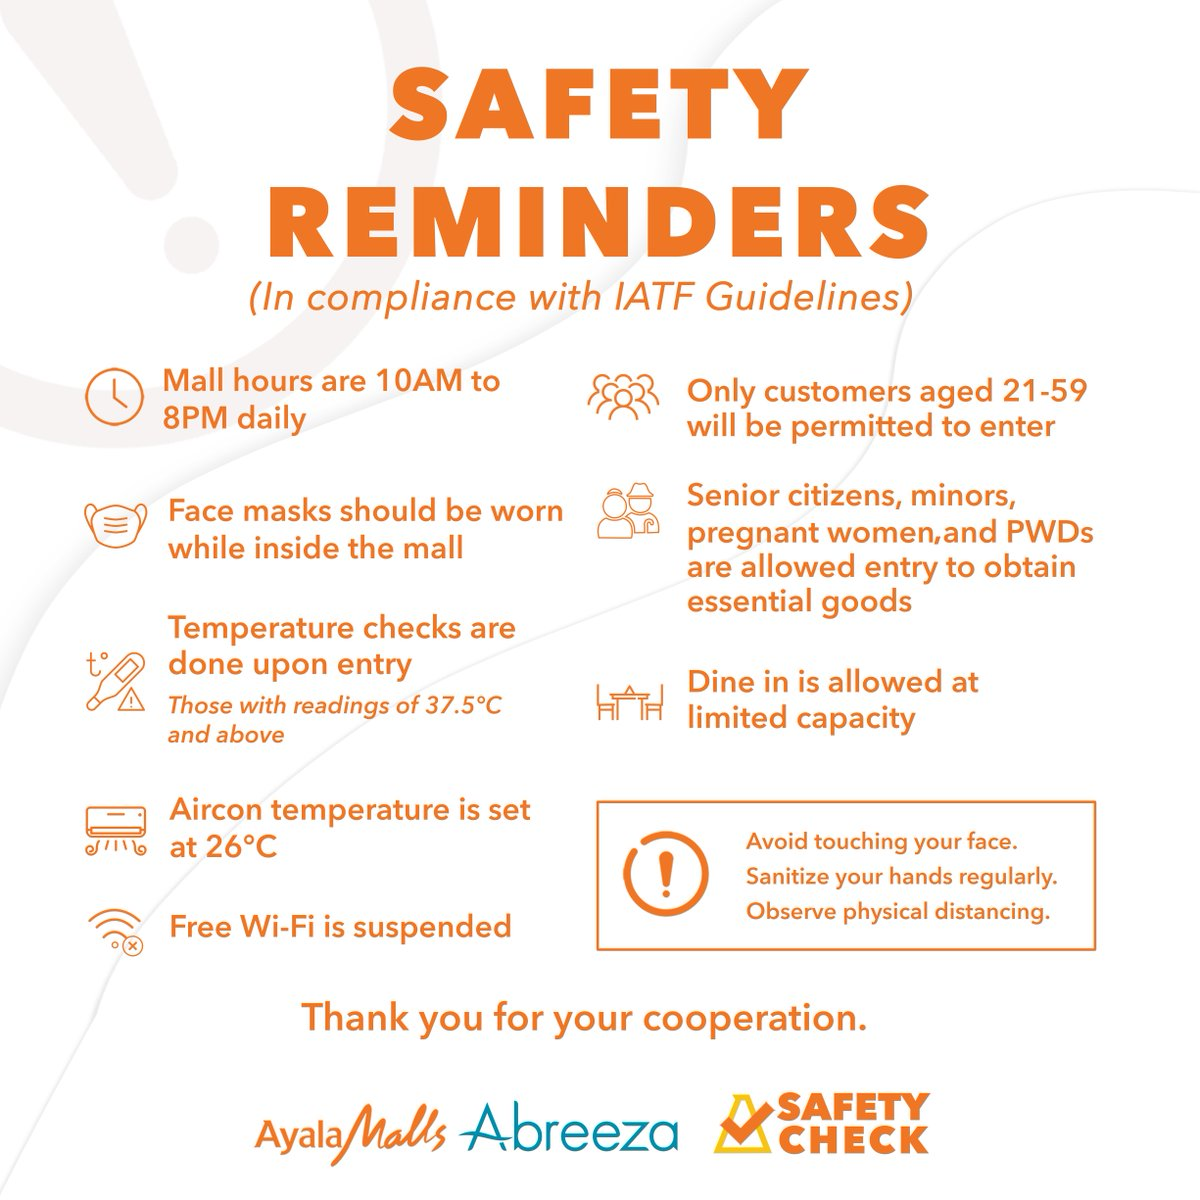 Safety reminders to our shoppers! We've put in place a number of measures to keep you safe when you visit us. Please view our updated list of safety reminders in compliance with IATF guidelines.  Let's all work together to keep Davao City healthy and safe! pic.twitter.com/fErFUWU1mp